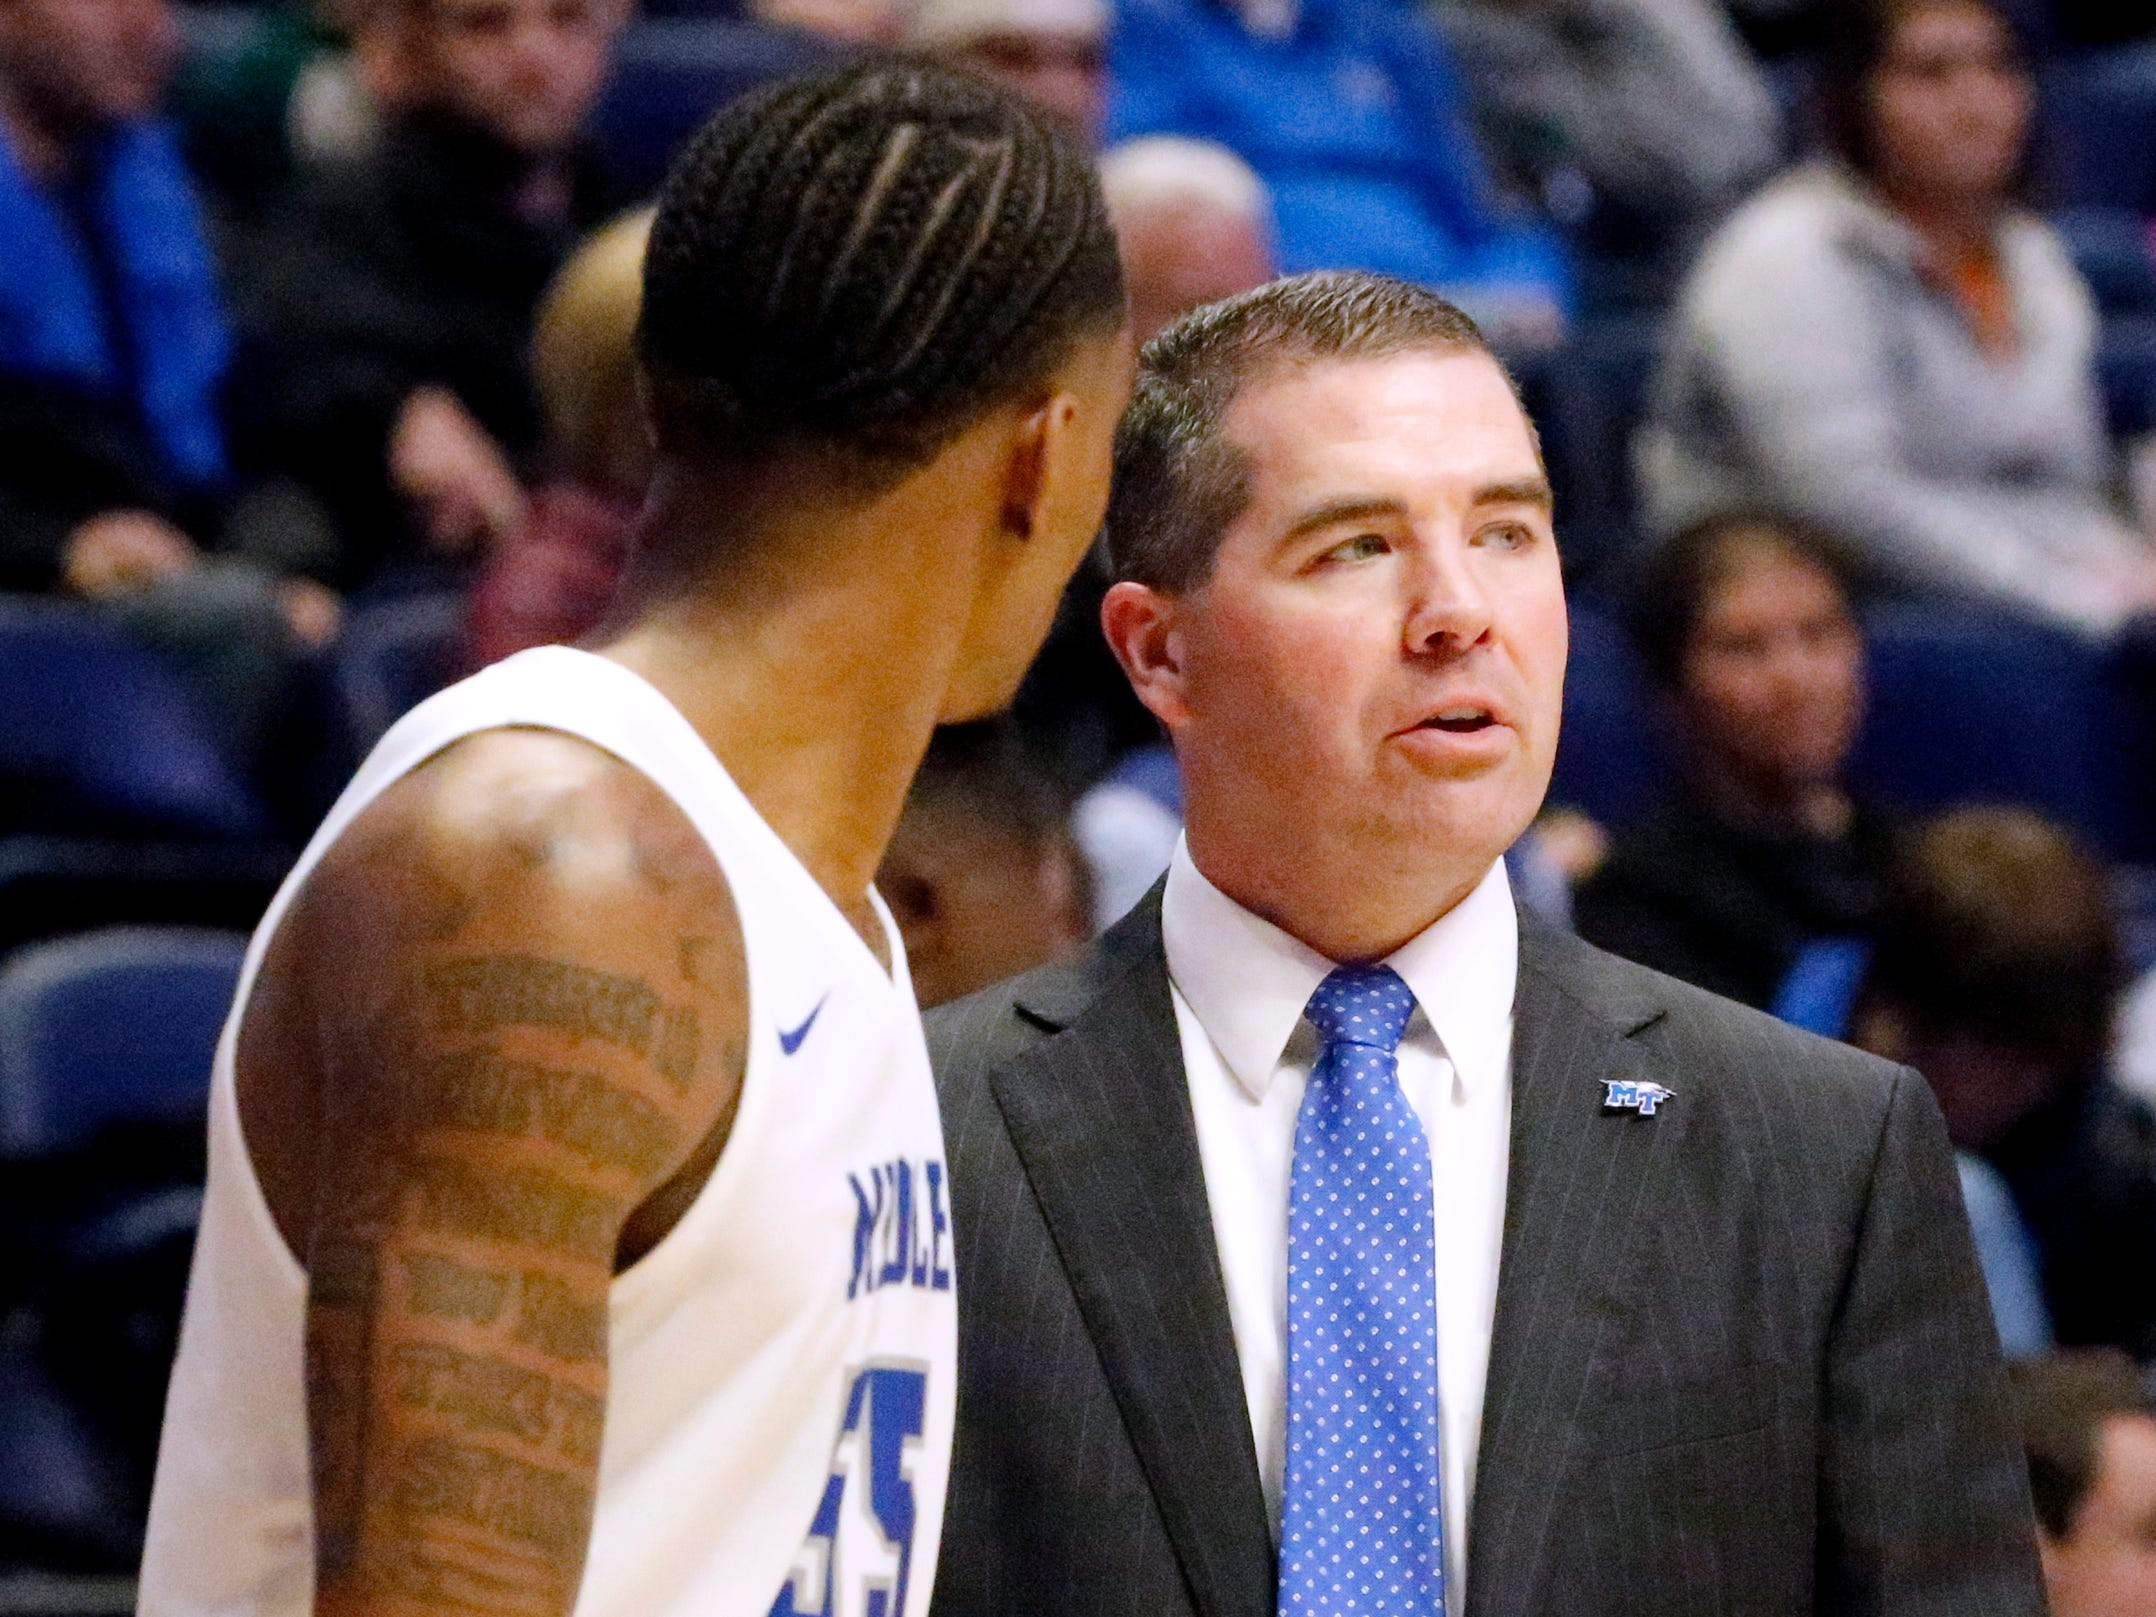 MTSU's head coach Nick McDevitt on the sideline with MTSU's guard Antonio Green (55) during the game against against Ole Miss on Friday Dec. 21, 2018, at Bridgestone Arena.